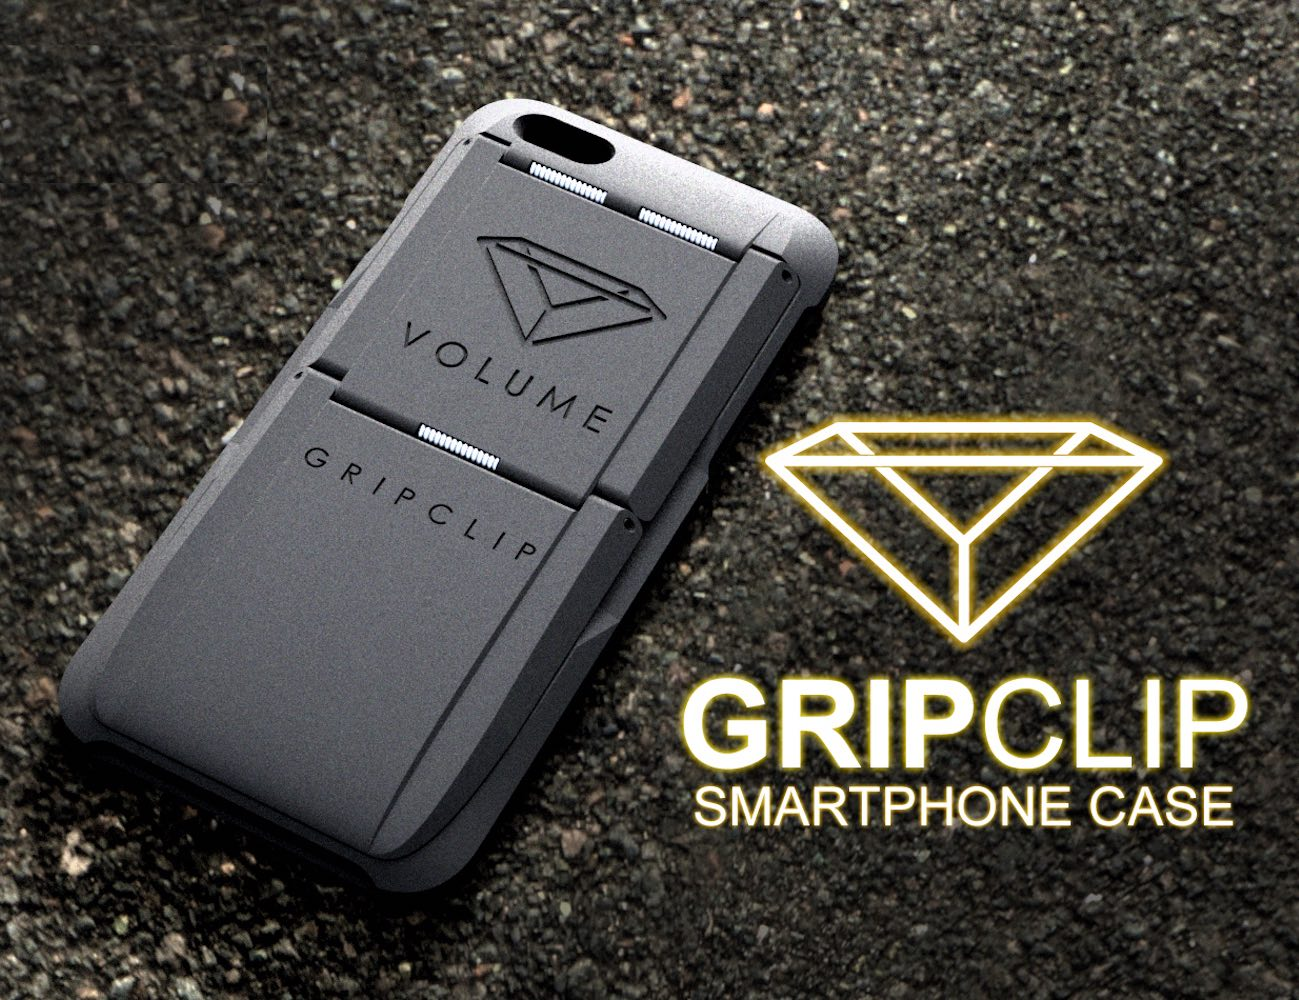 grip-clip-the-worlds-most-useful-iphone-case-01